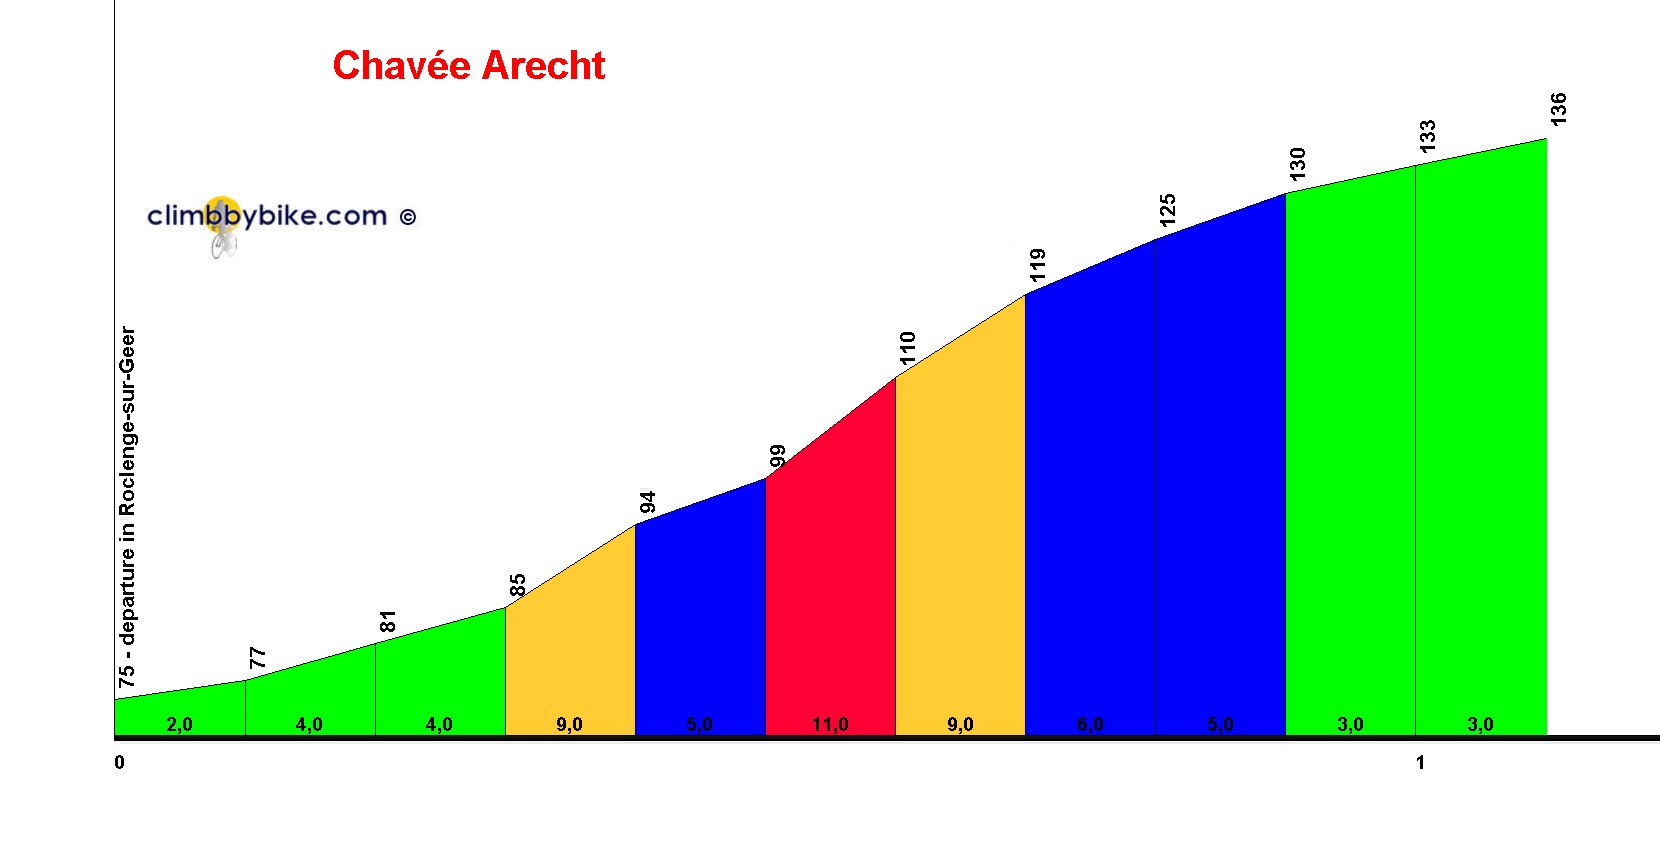 Elevation profile for Chavée Arecht